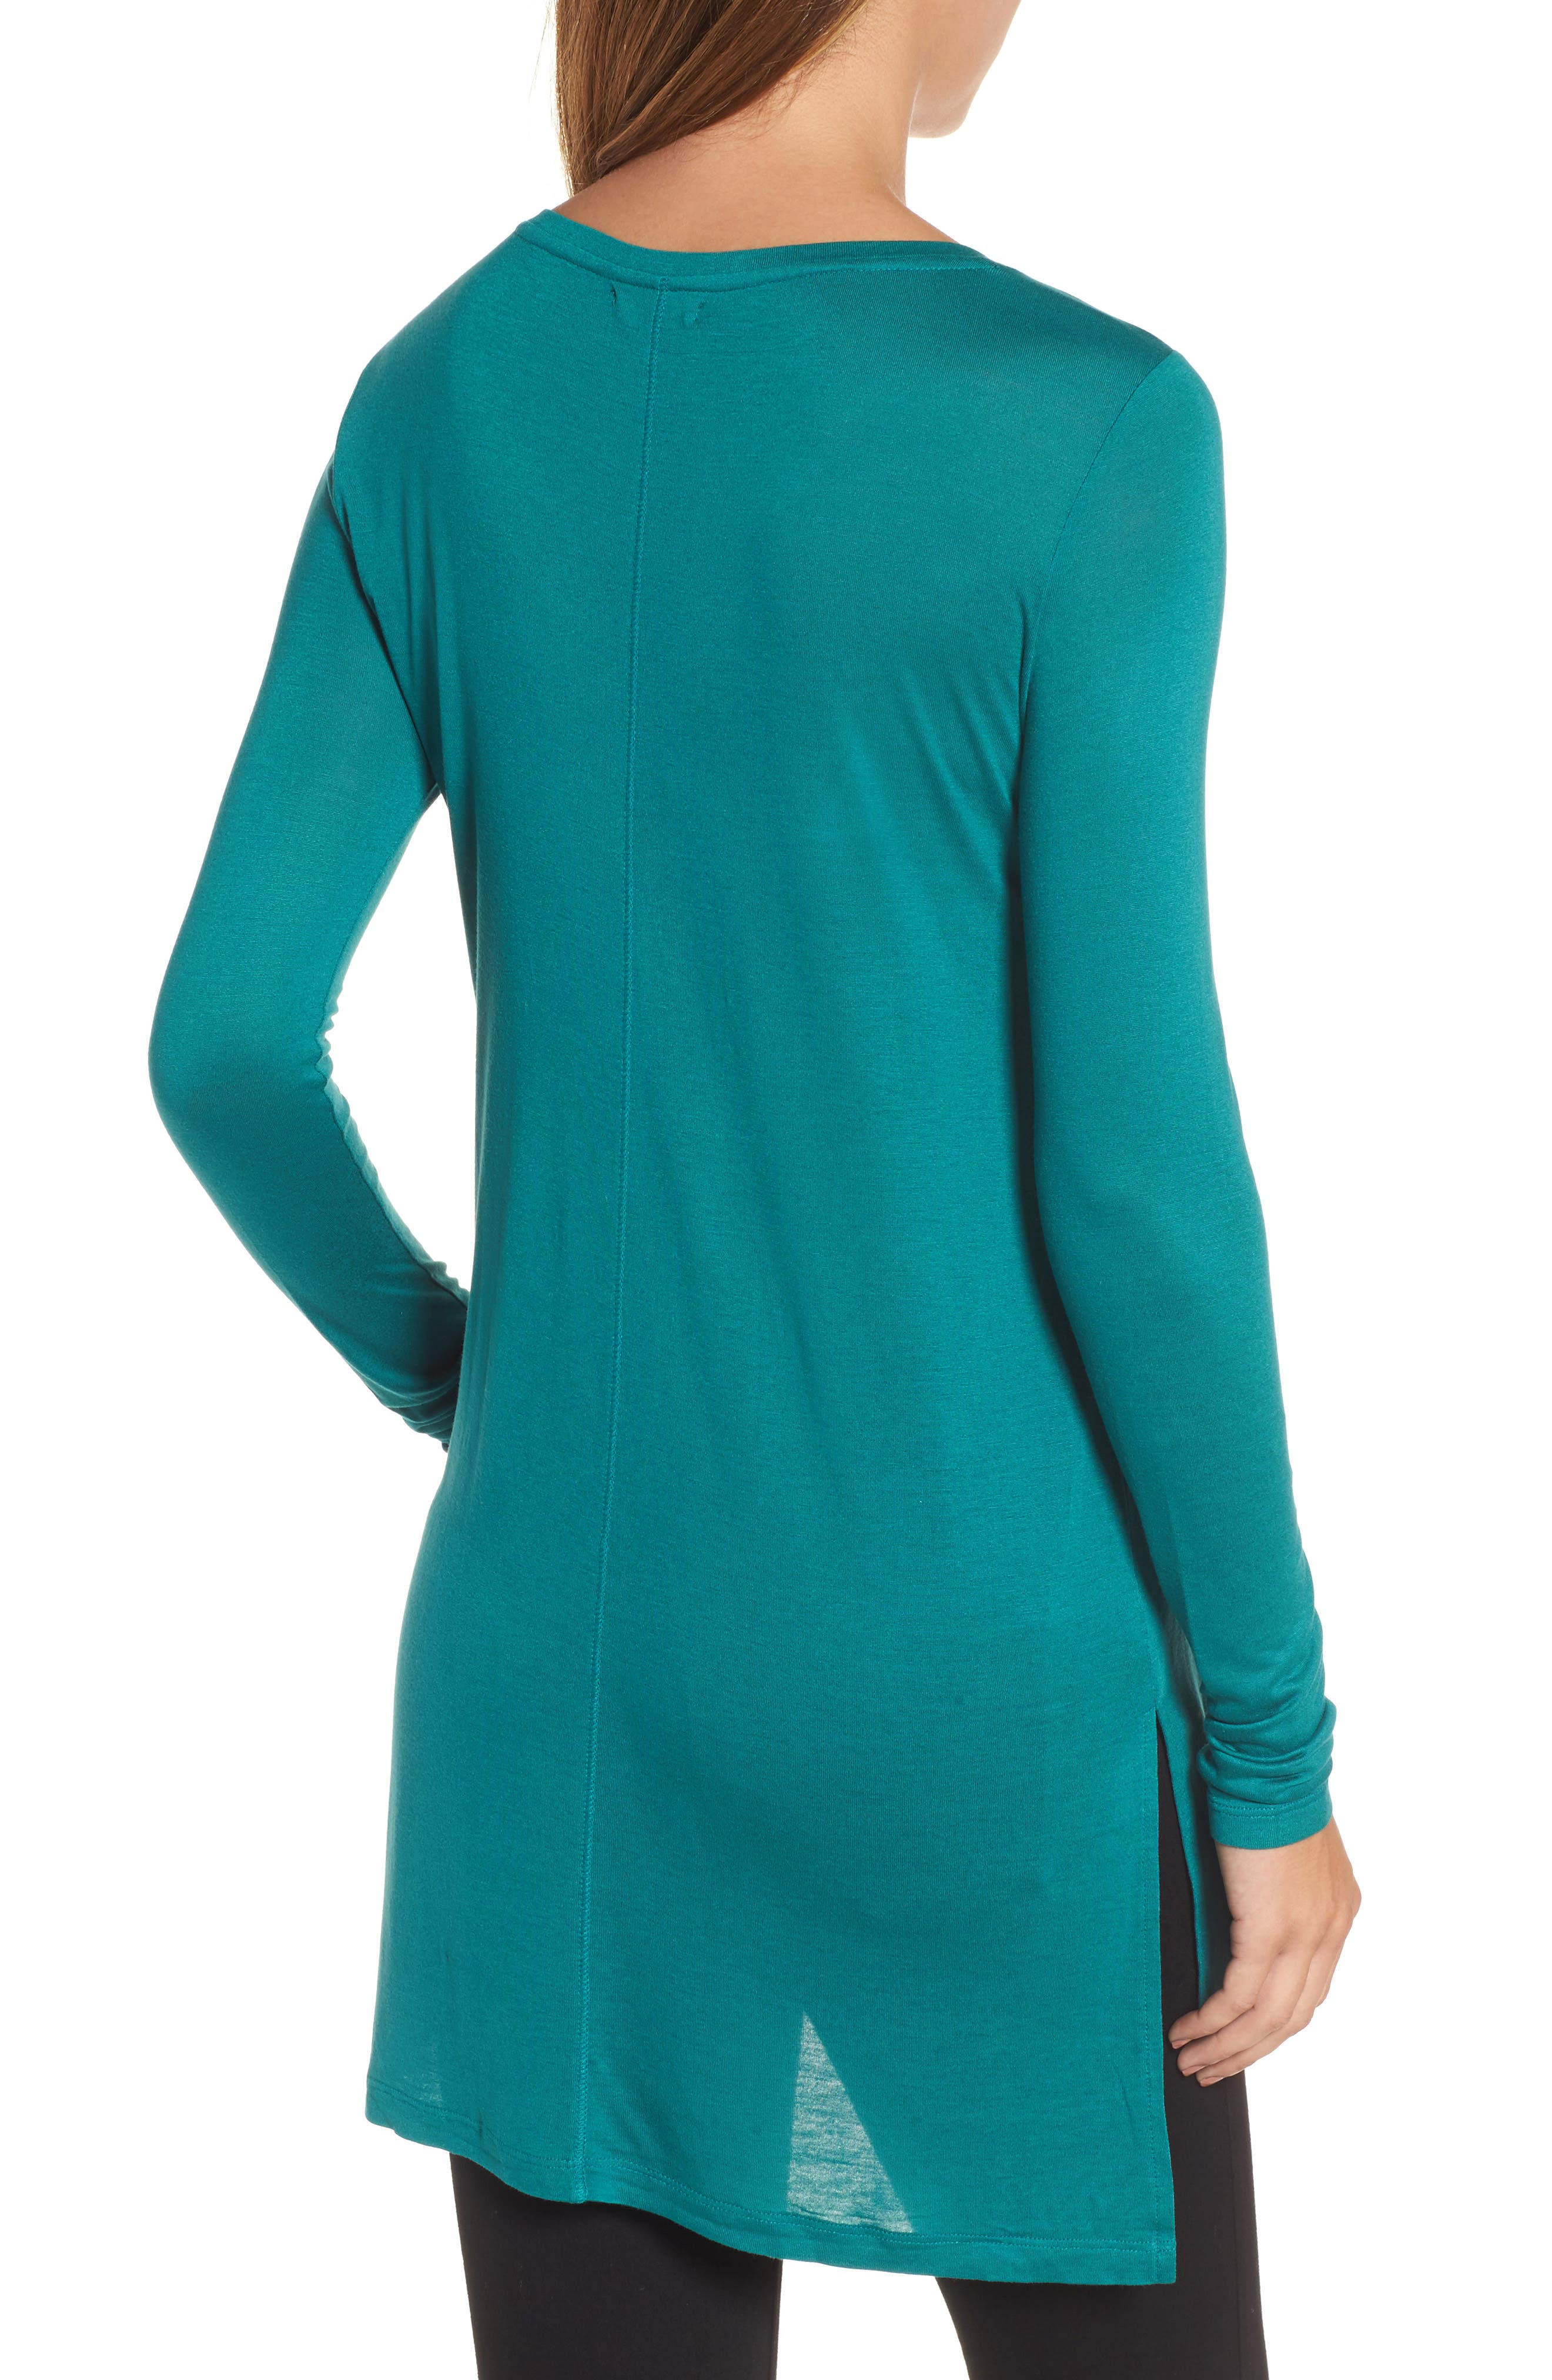 Long Sleeve Lightweight Tunic,                             Alternate thumbnail 2, color,                             Teal Green